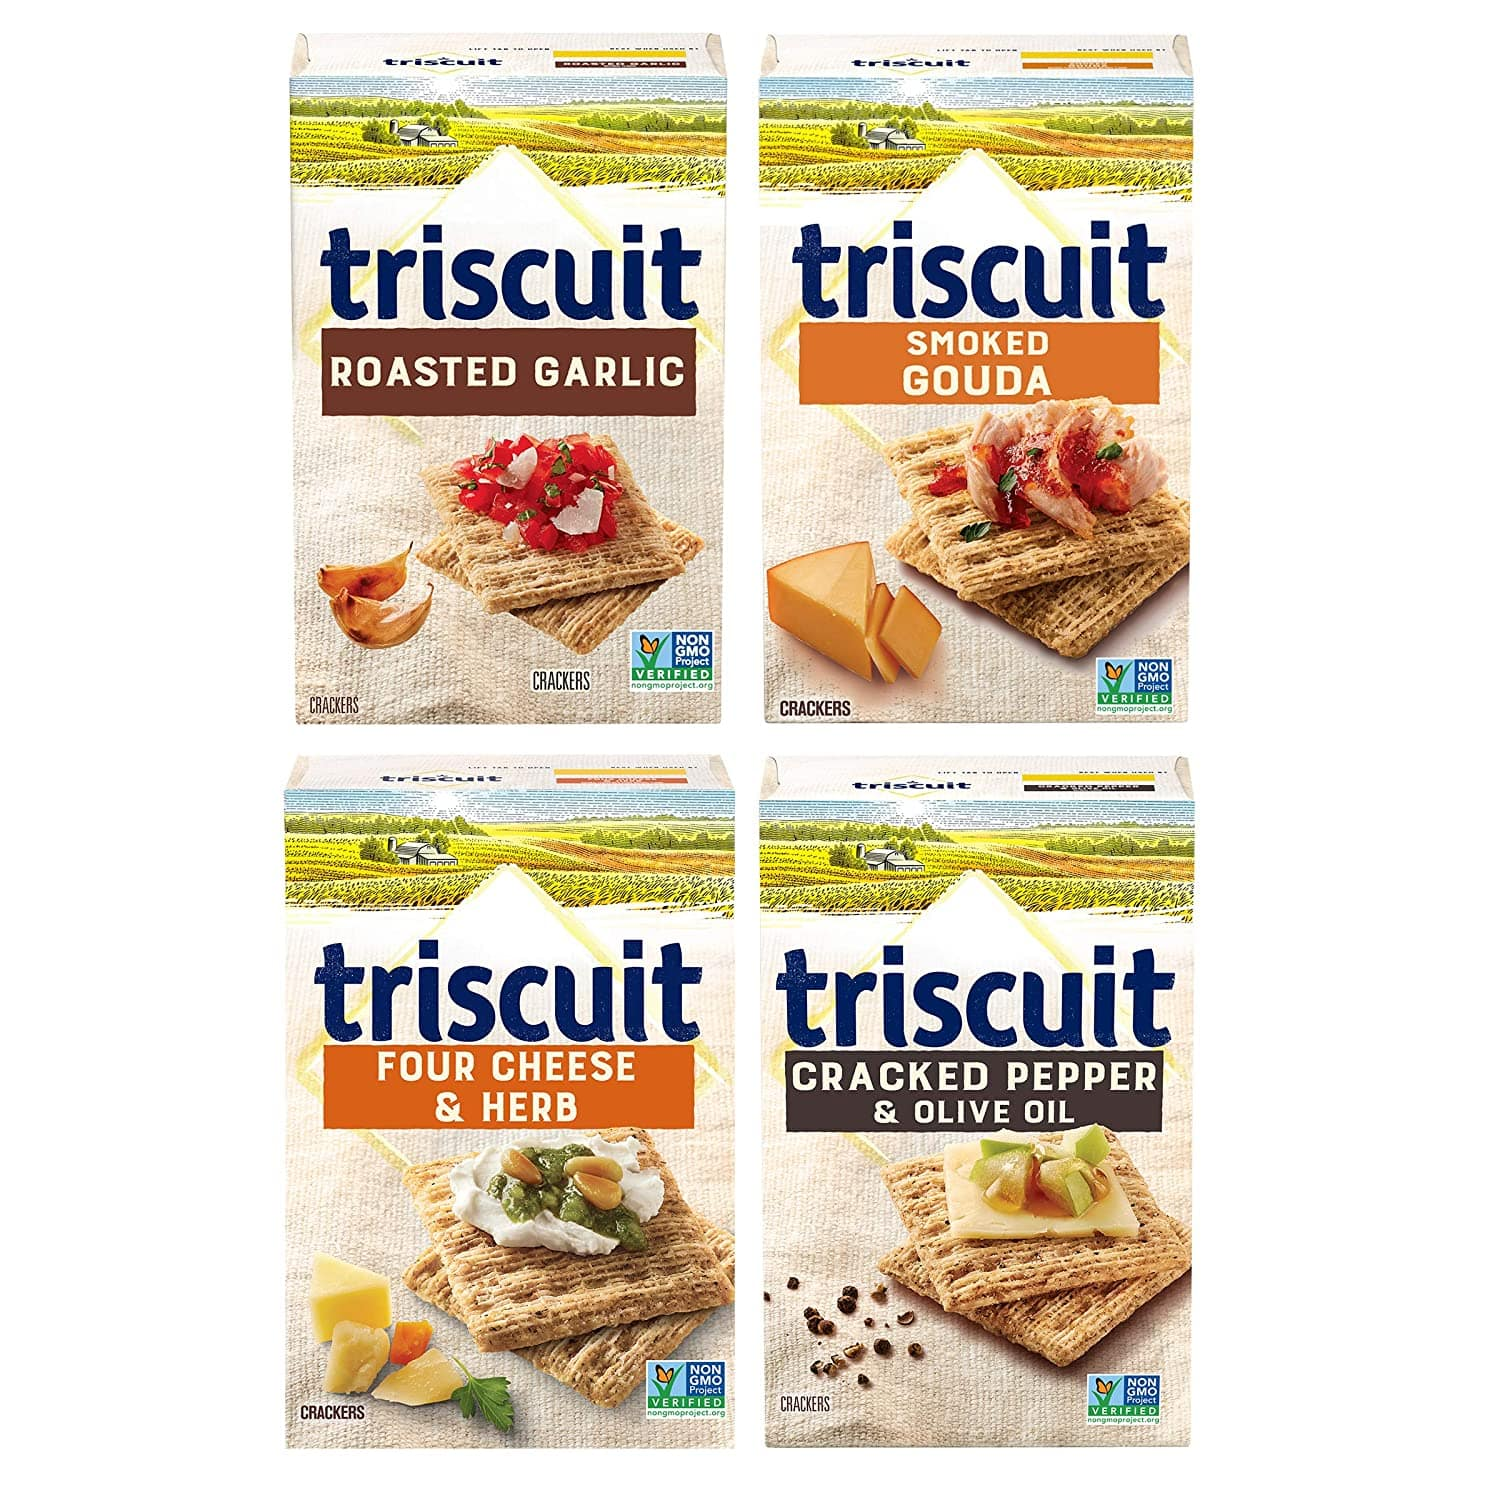 Amazon S&S - Triscuit Variety Pack - Four 9oz boxes - $7.01